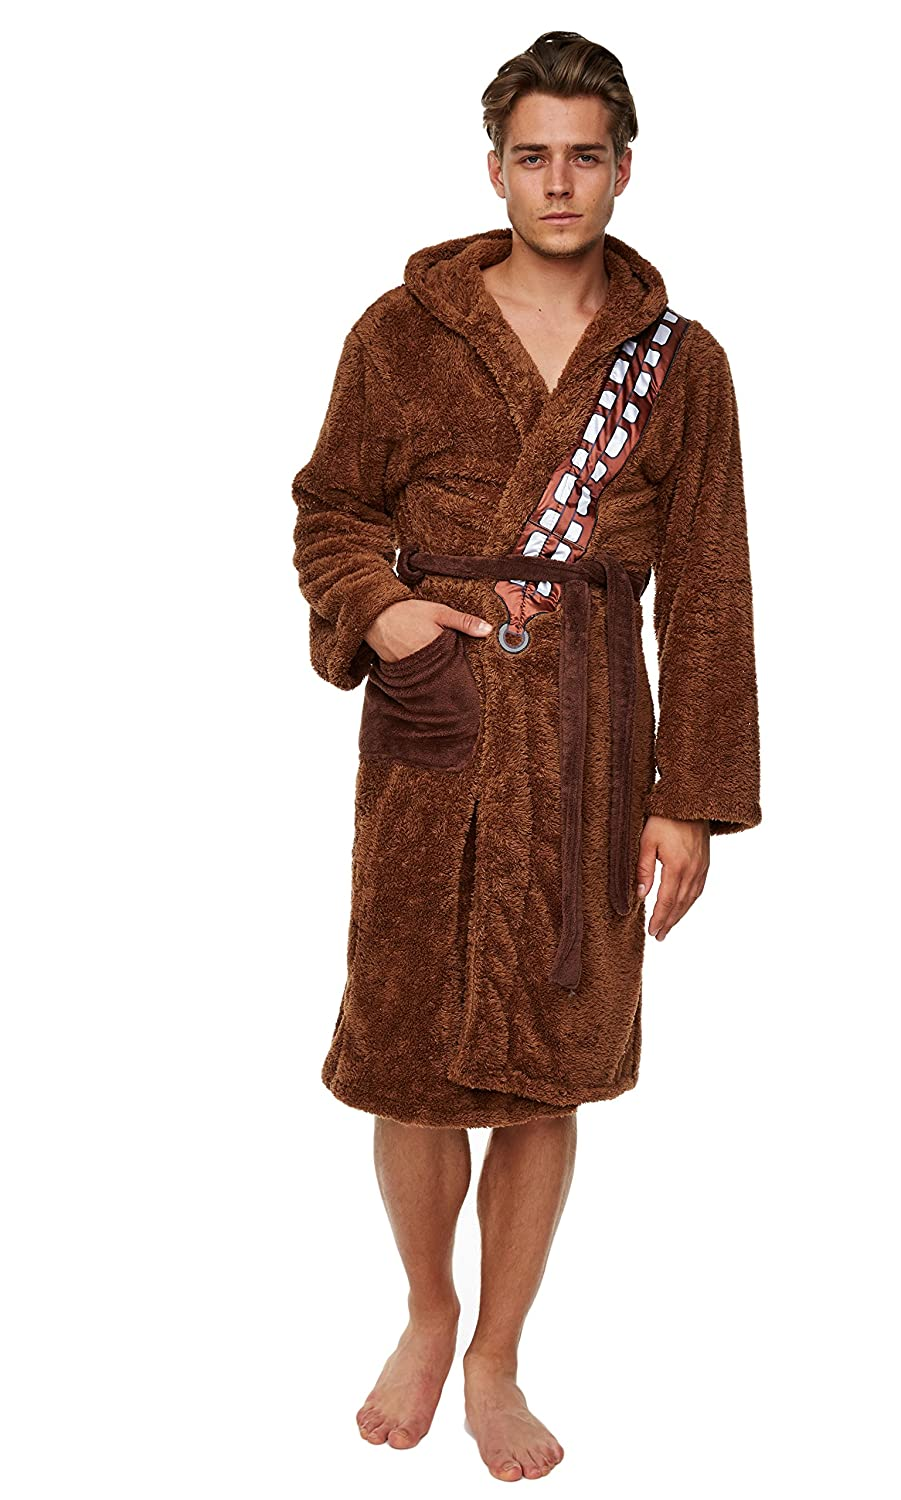 Mens Brown Fleece Chewbacca Star Wars Dressing Gown: Amazon.co.uk ...